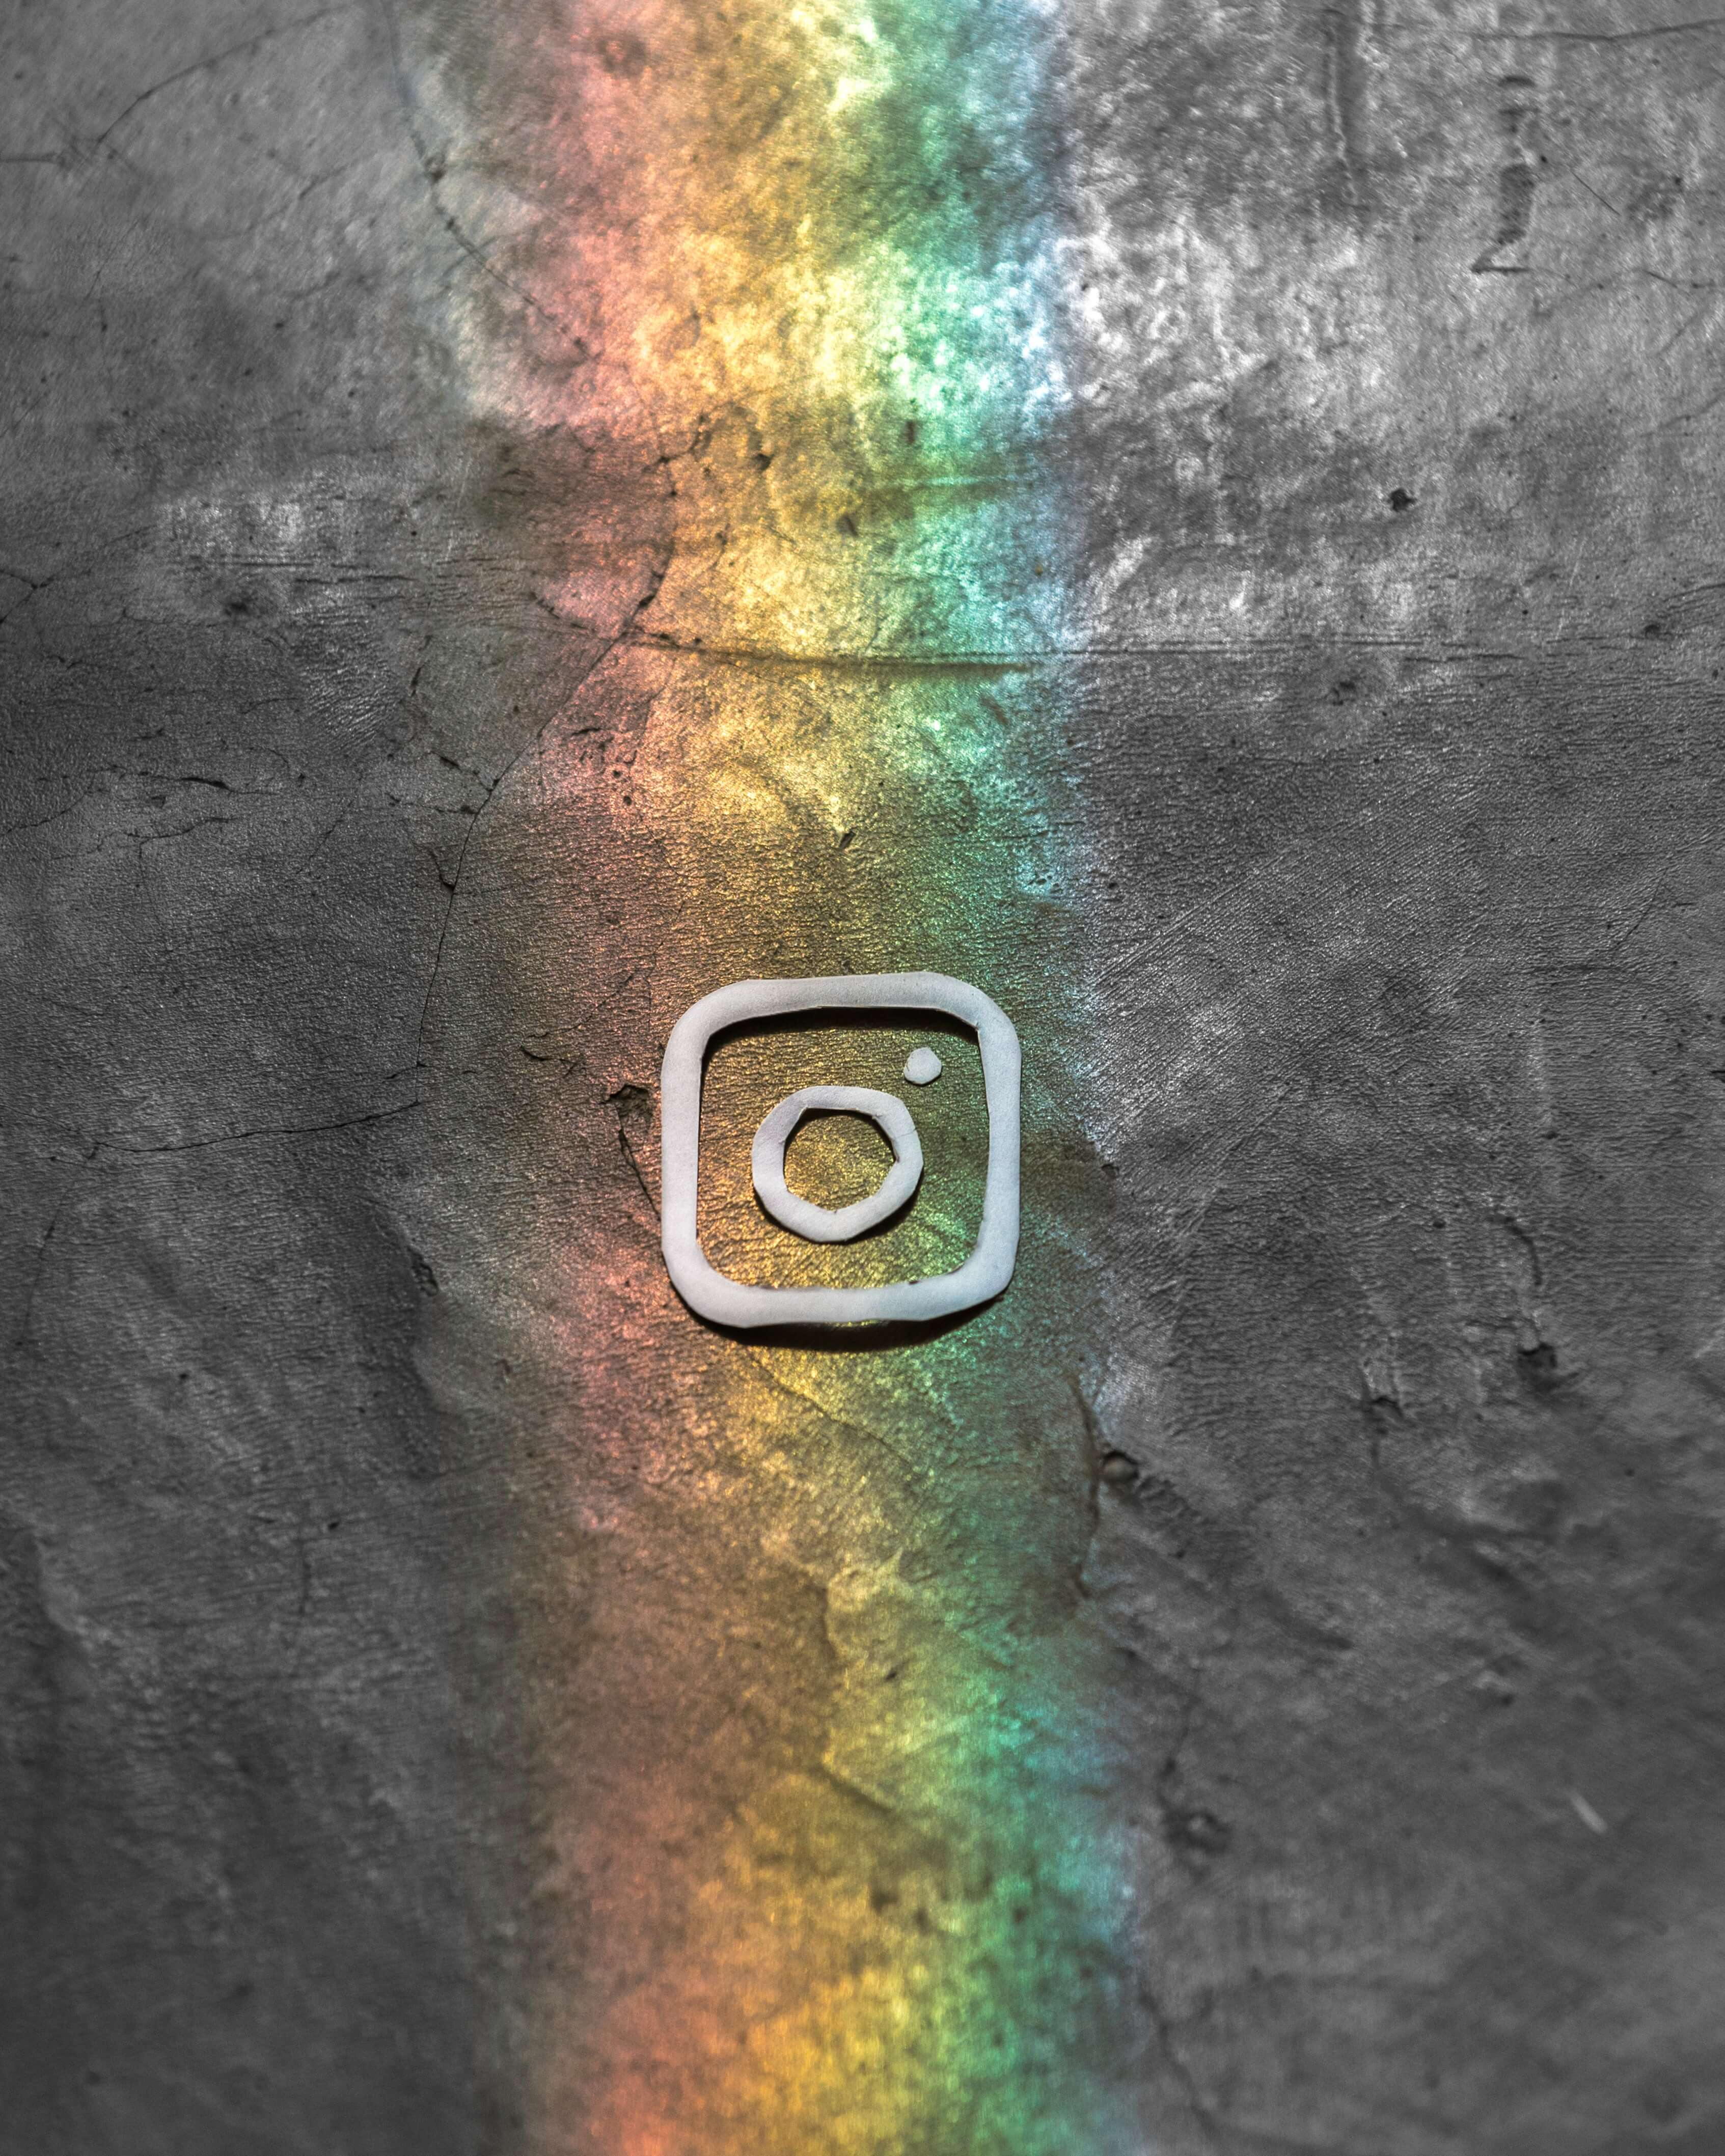 The ultimate guide on how to get more likes on Instagram